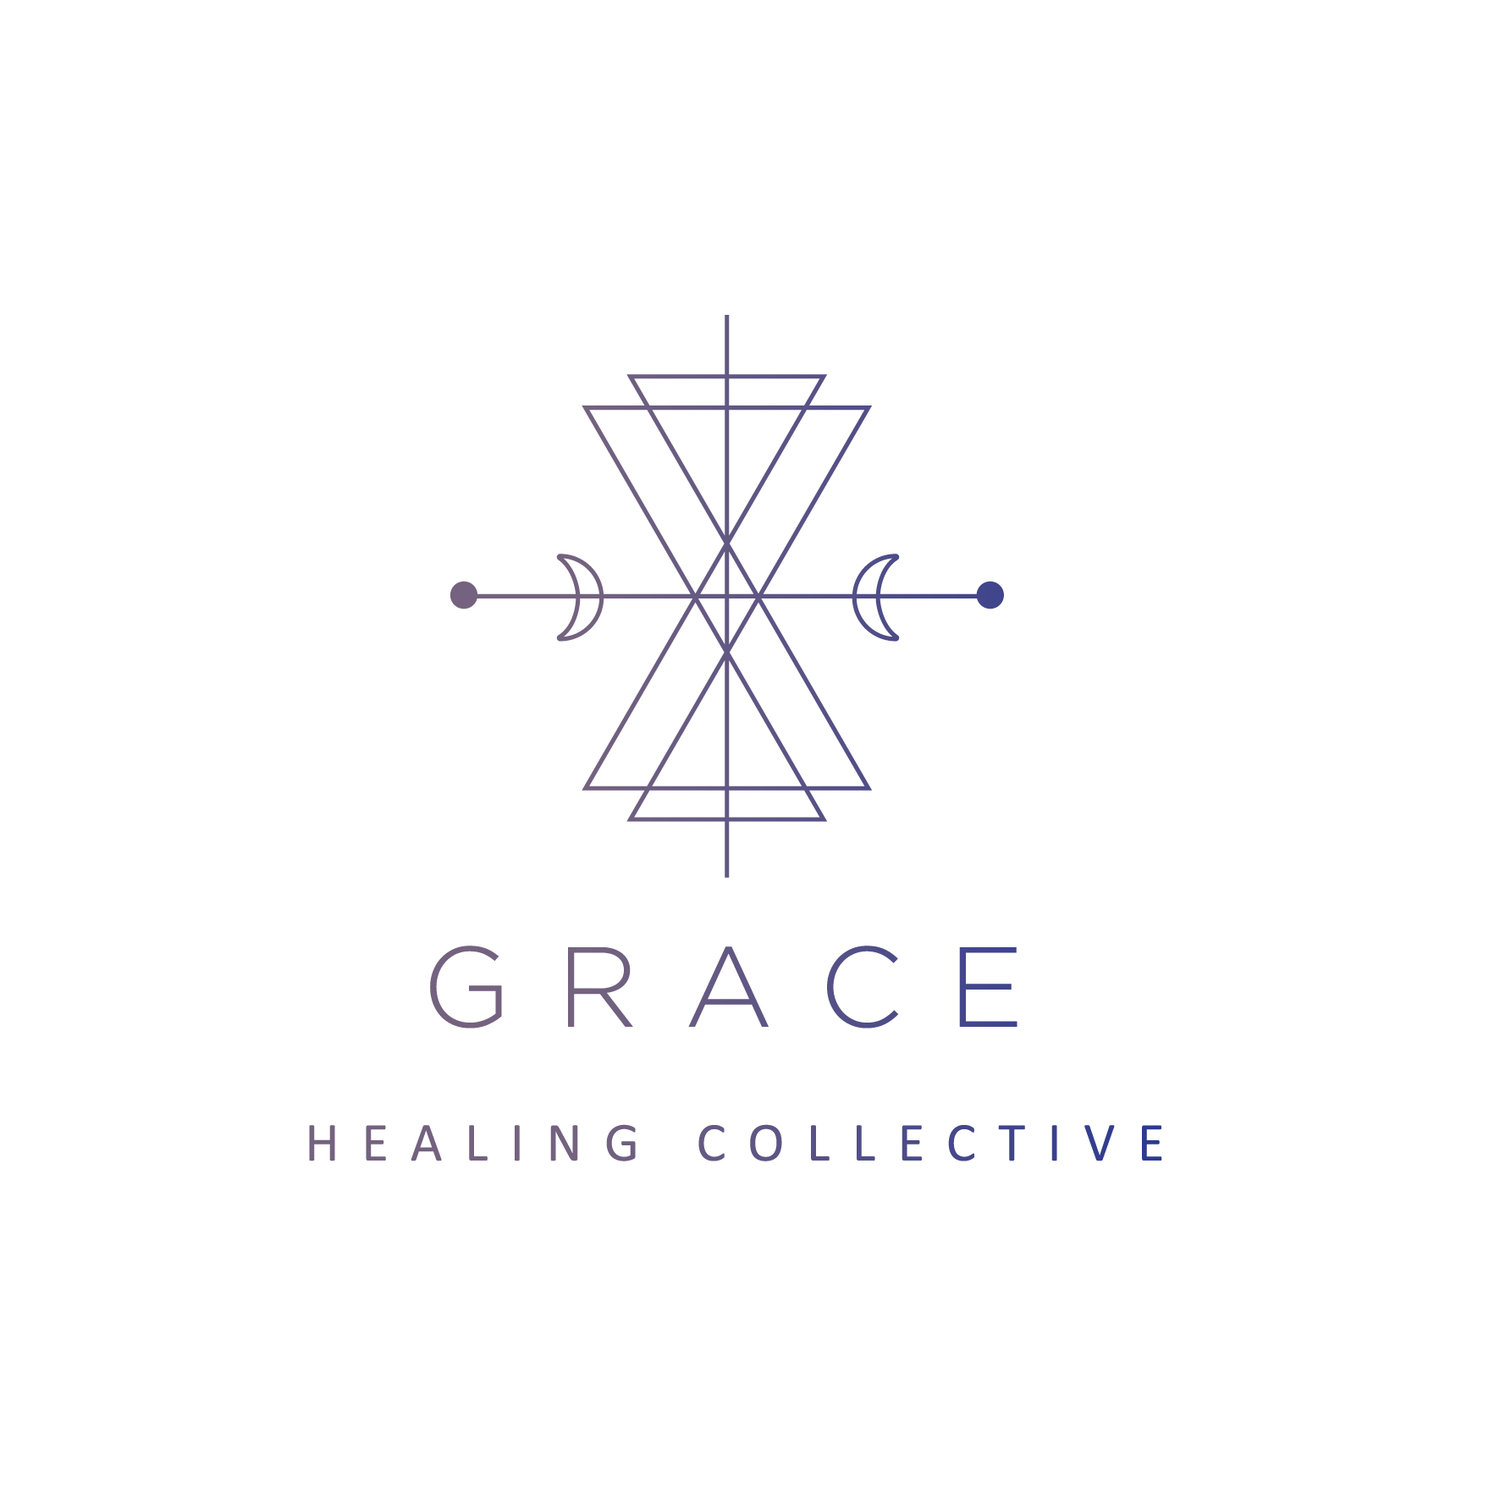 Grace Healing Collective